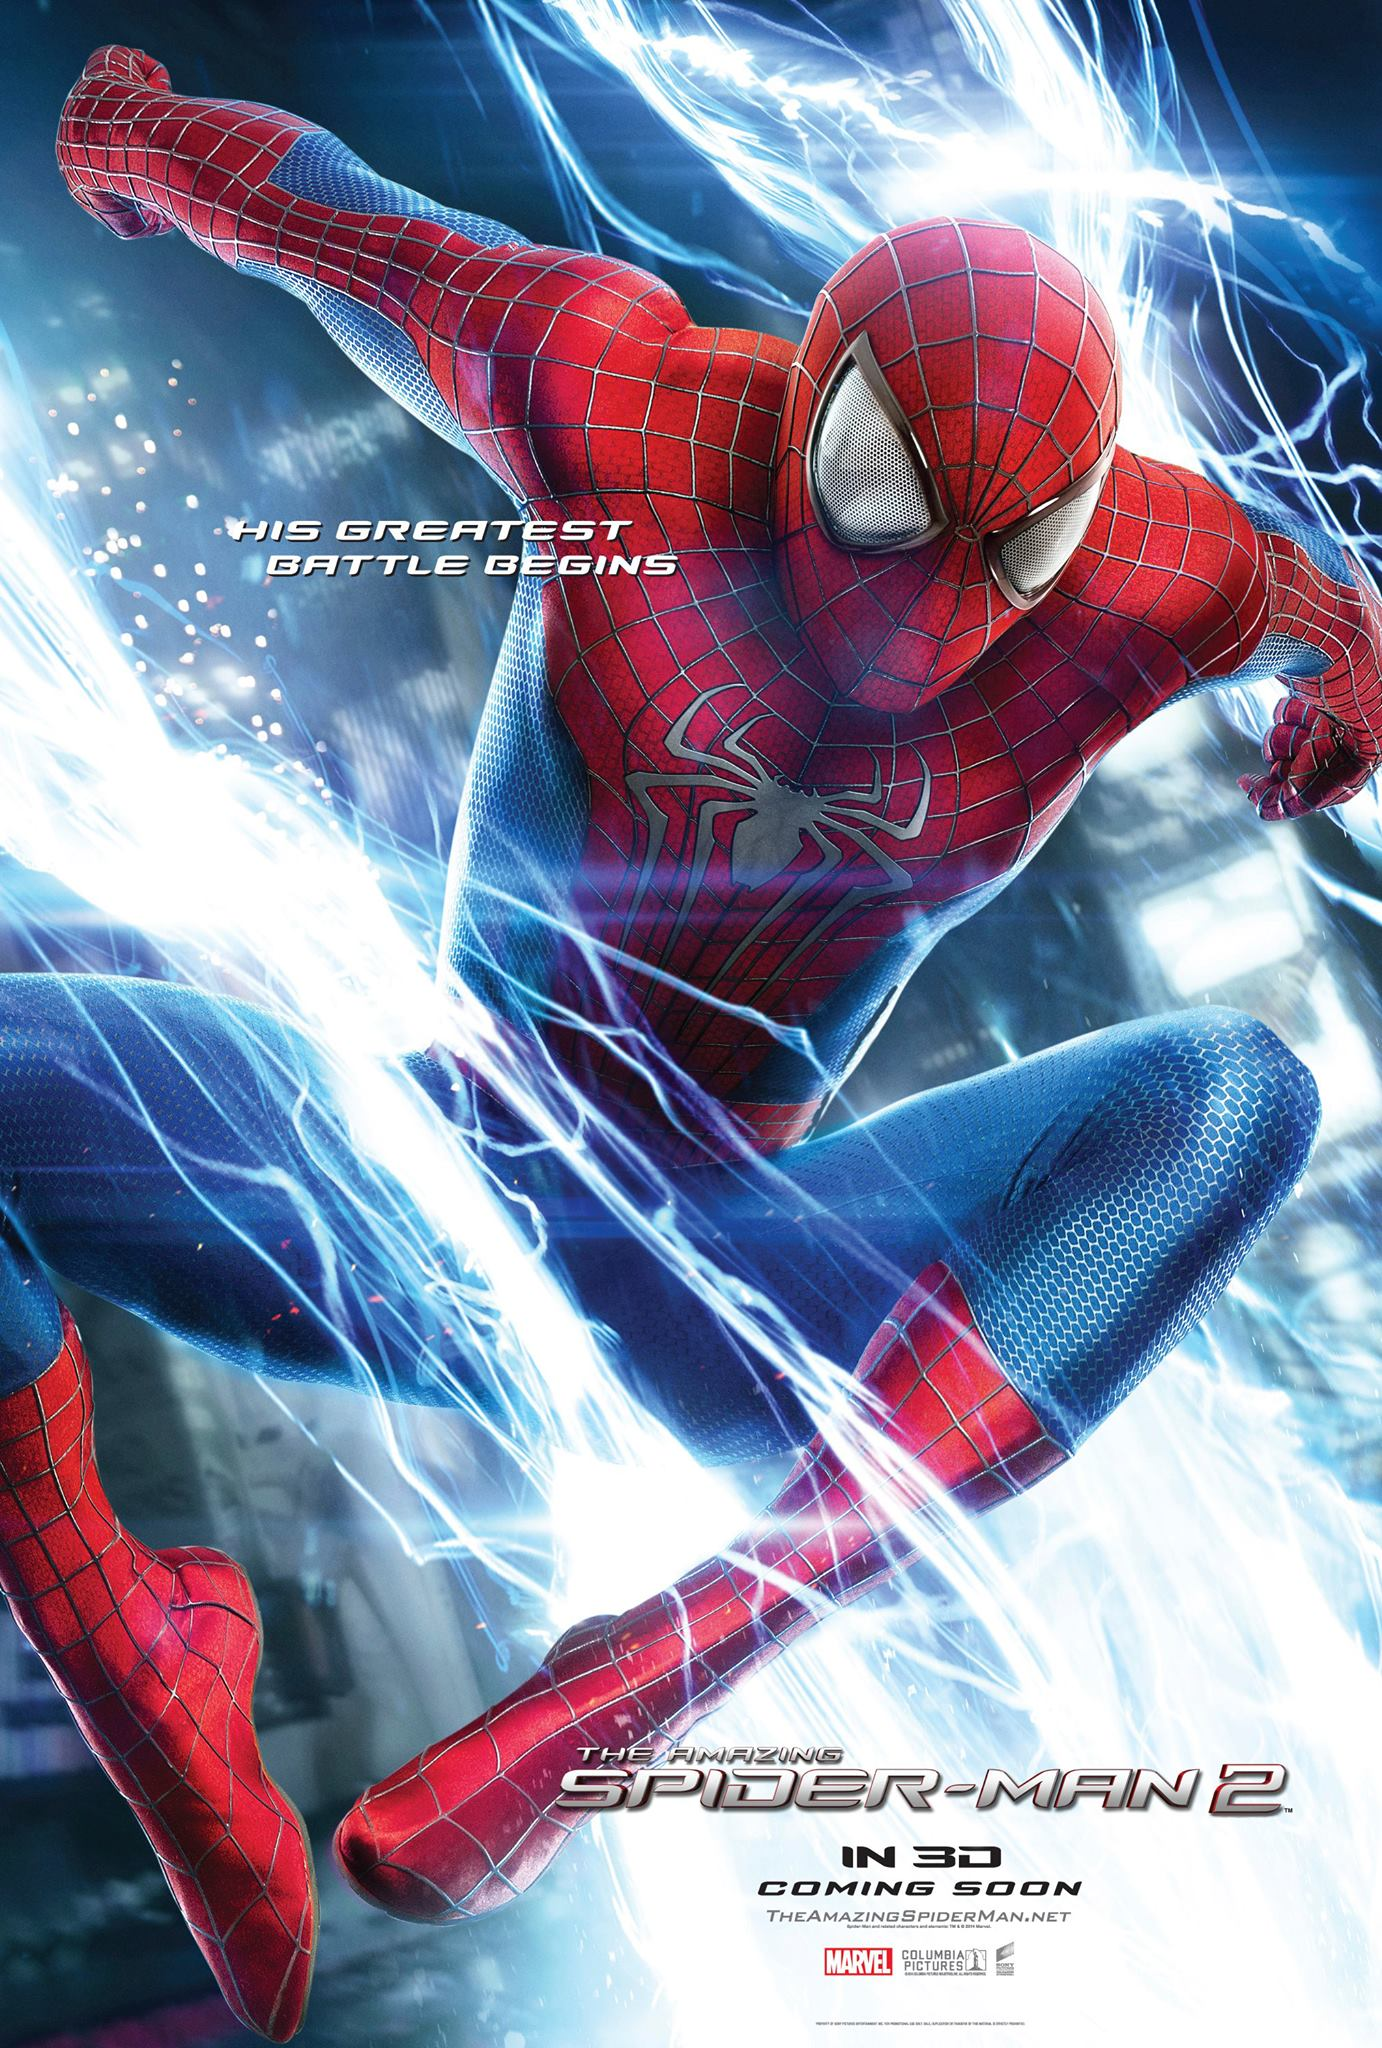 The Amazing Spider-Man 2 (film) poster 001.jpg